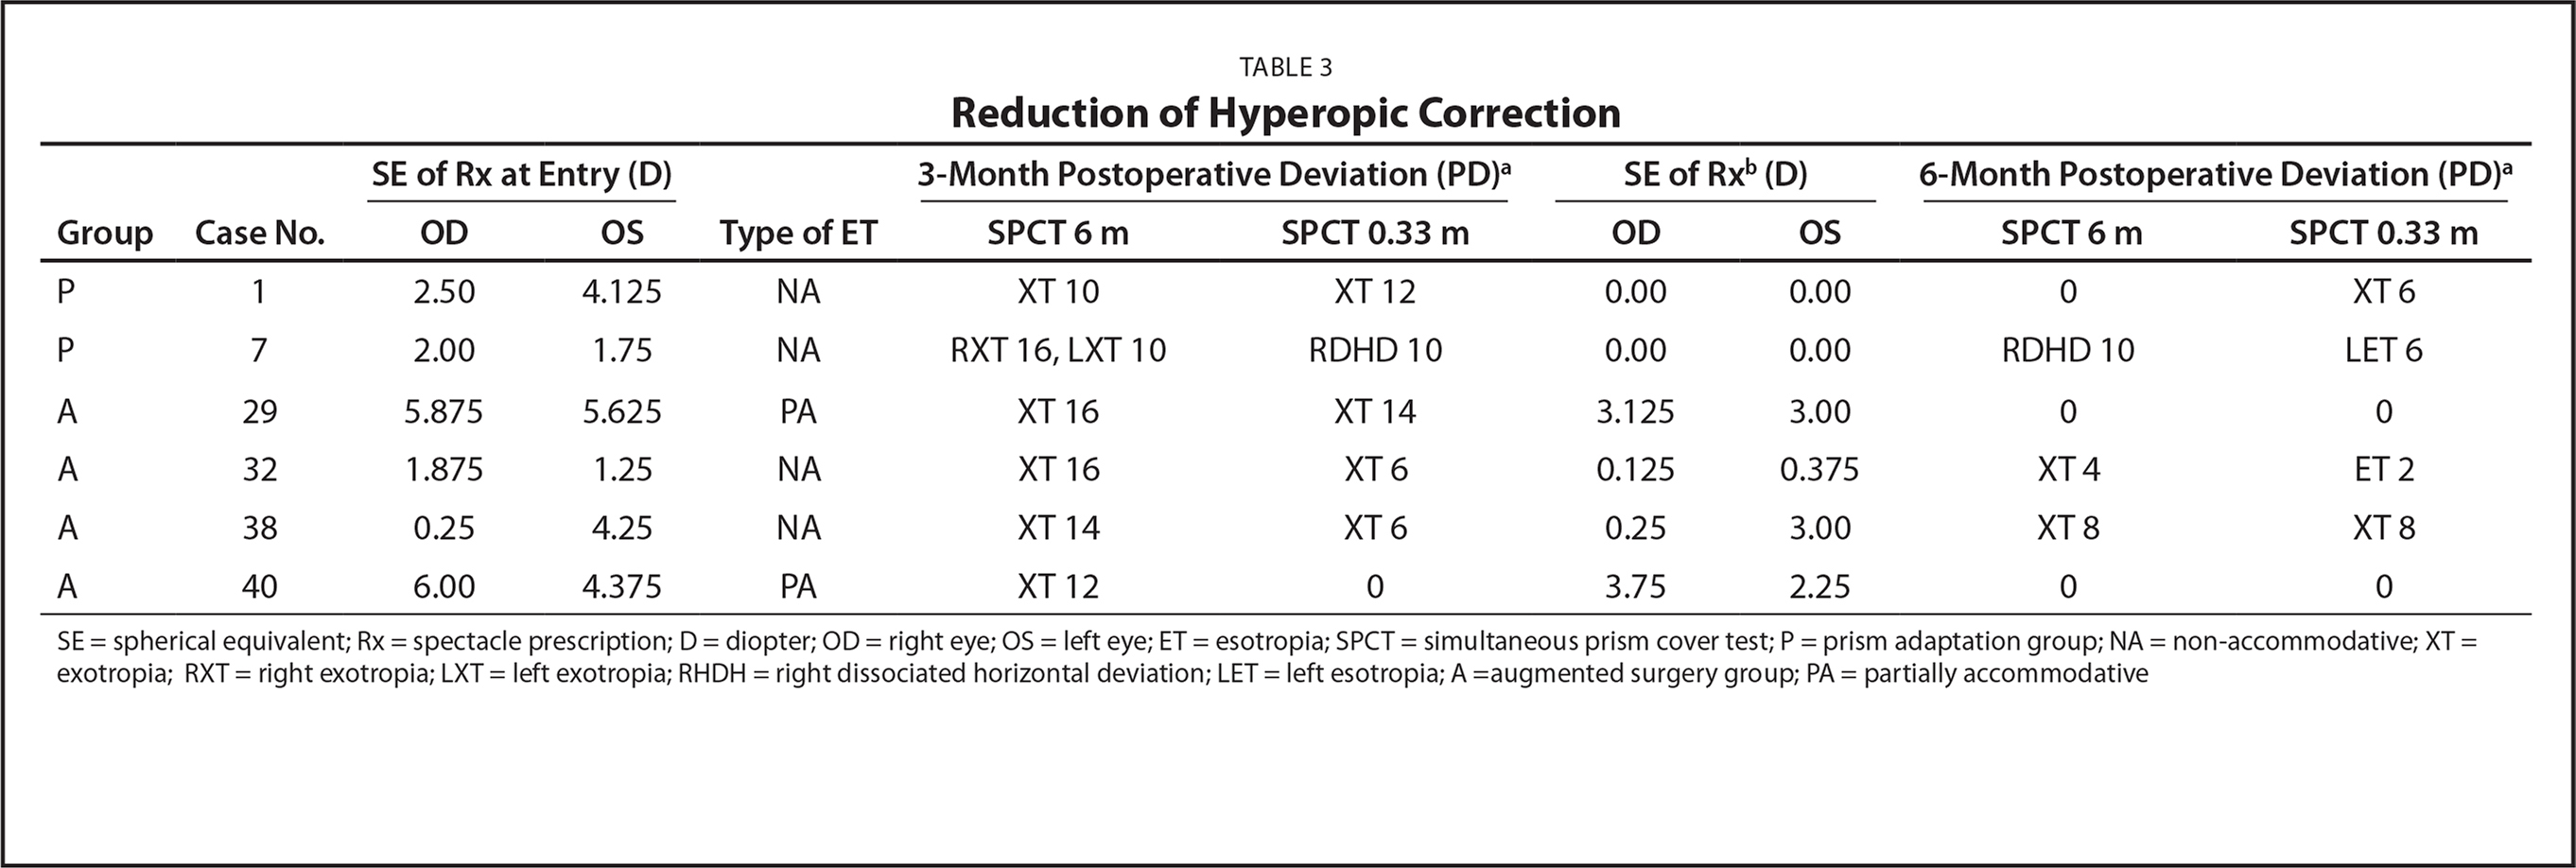 Reduction of Hyperopic Correction